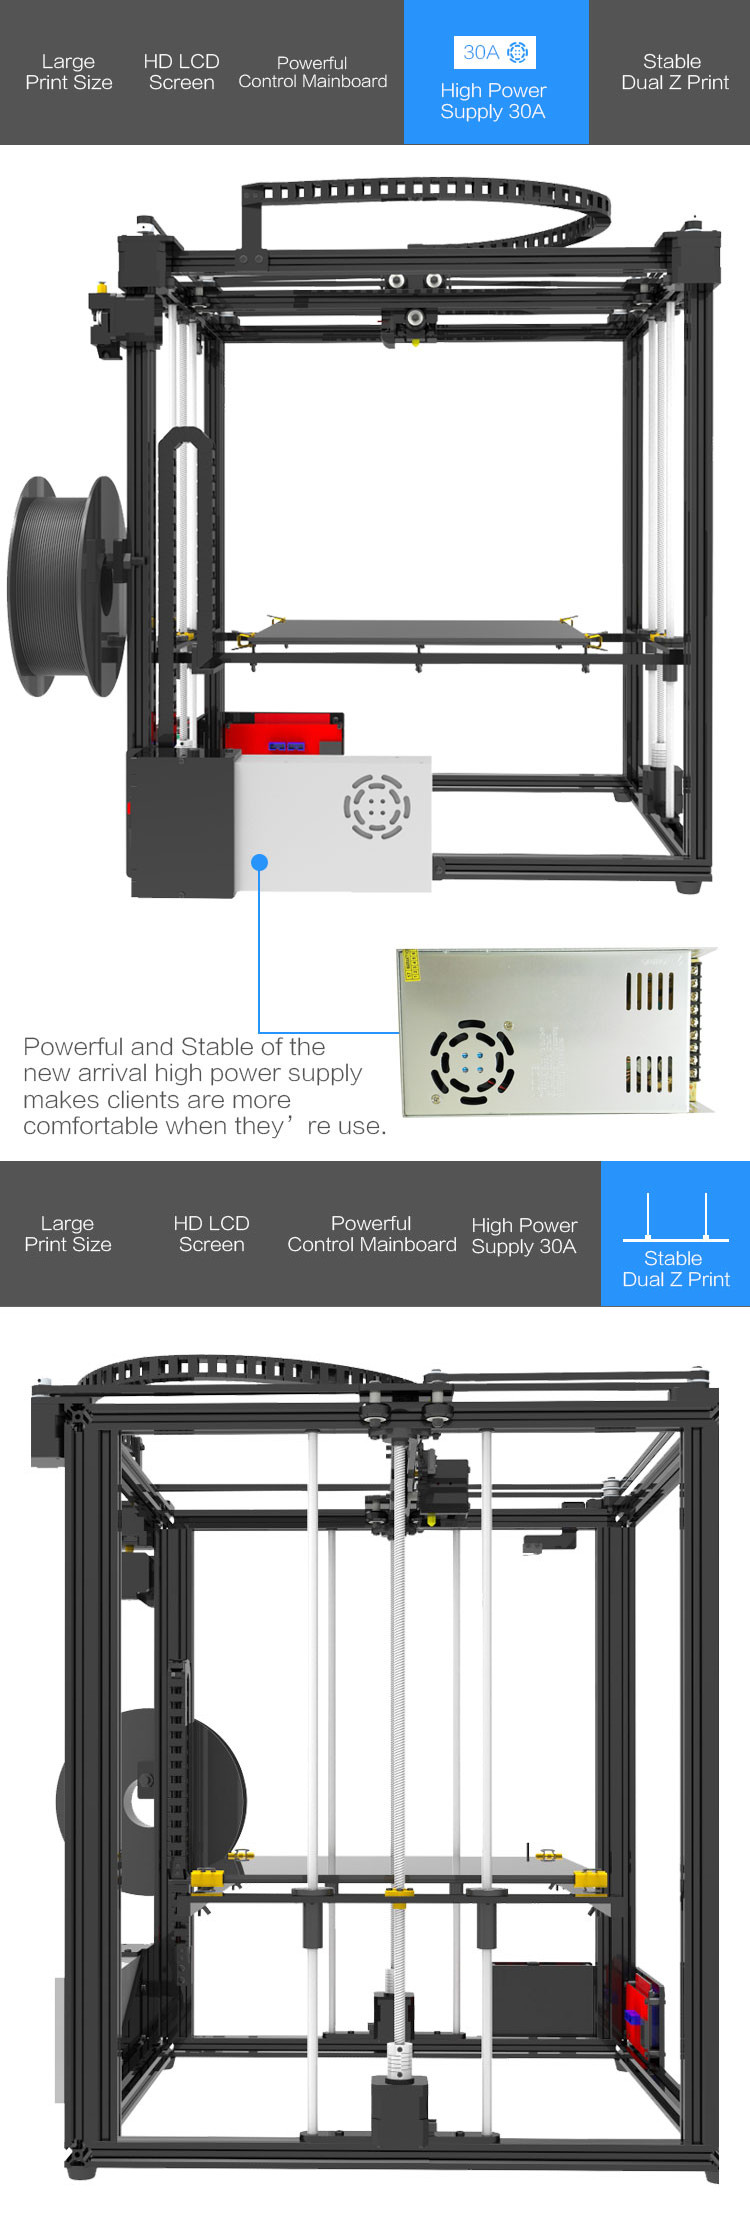 TRONXY® X5S-400 DIY Aluminum 3D Printer Kit 400*400*400mm Large Printing Size With Dual Z-axis Rod/HD LCD Screen/Double Fan 1.75mm 0.4mm Nozzle